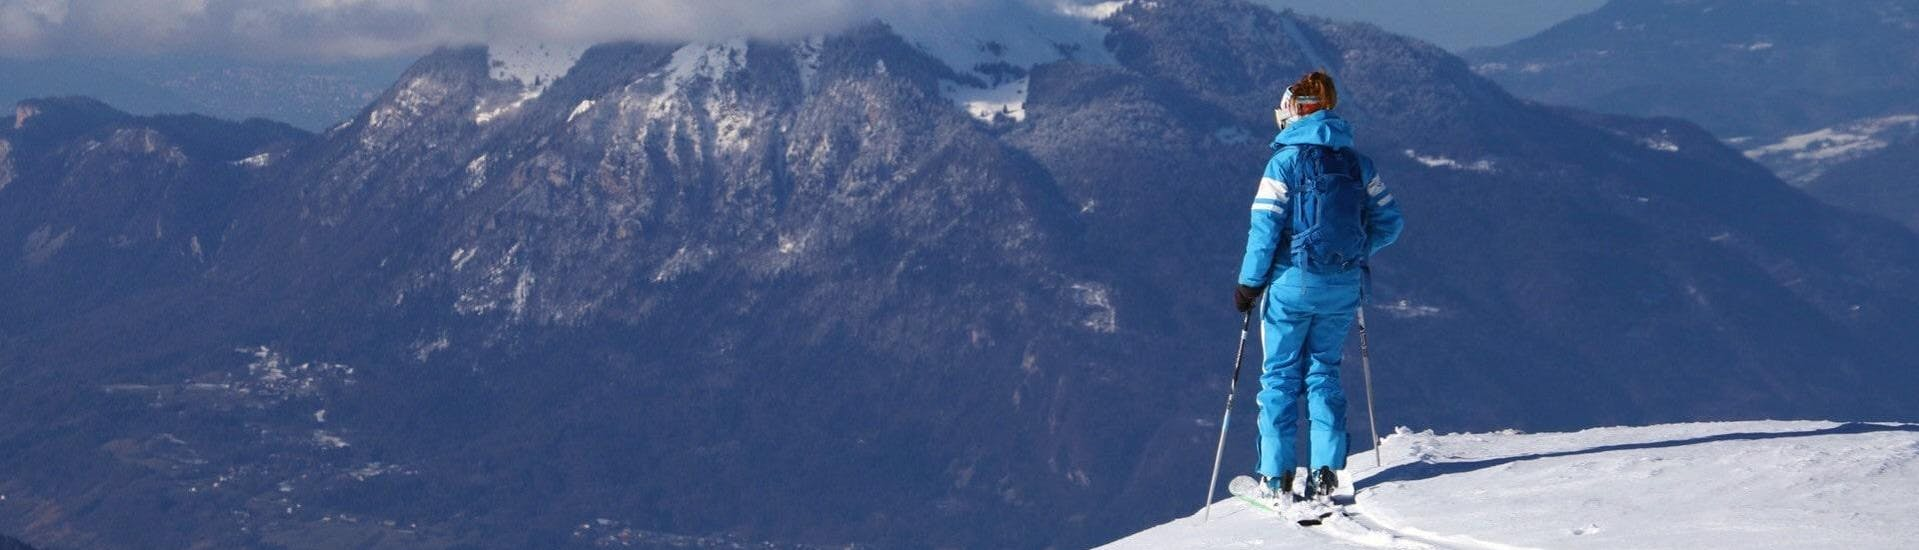 private-ski-lessons-for-adults-afternoon-all-levels-360-avoriaz-hero